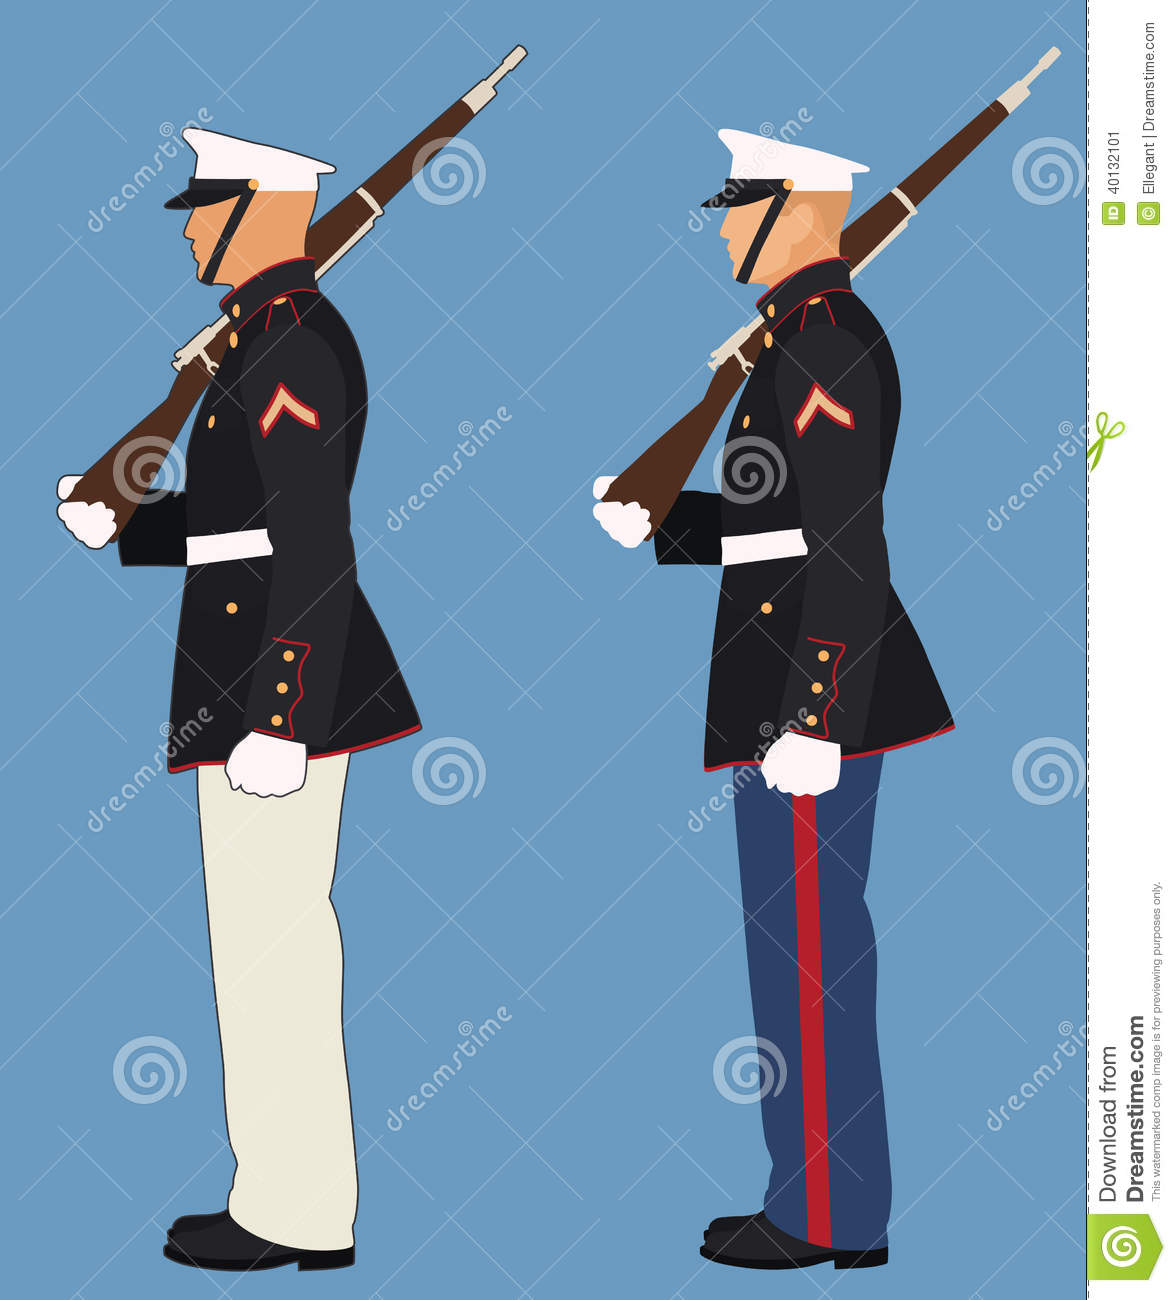 Marine With Rifle On Shoulder Standing At Attention #mfGnnW.